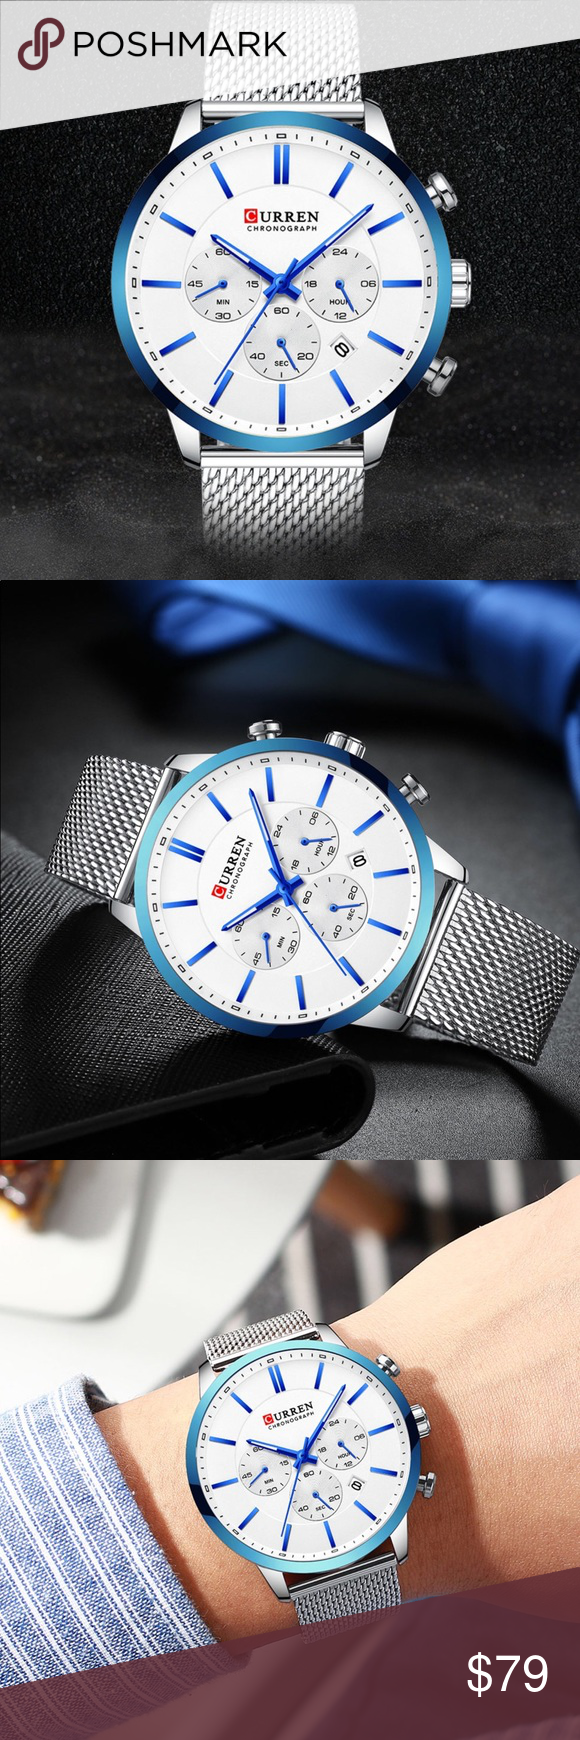 Sports Watch for Men Curren Brand Sports Watch  Waterproof  Chronograph  Calendar Quartz  Band Material: Stainless Steel Band Length: 25 cm (9,84 inches) Case Material: Alloy Case Diameter: 48 mm (1,88 inches) No Box Curren Accessories Watches #sportswatches